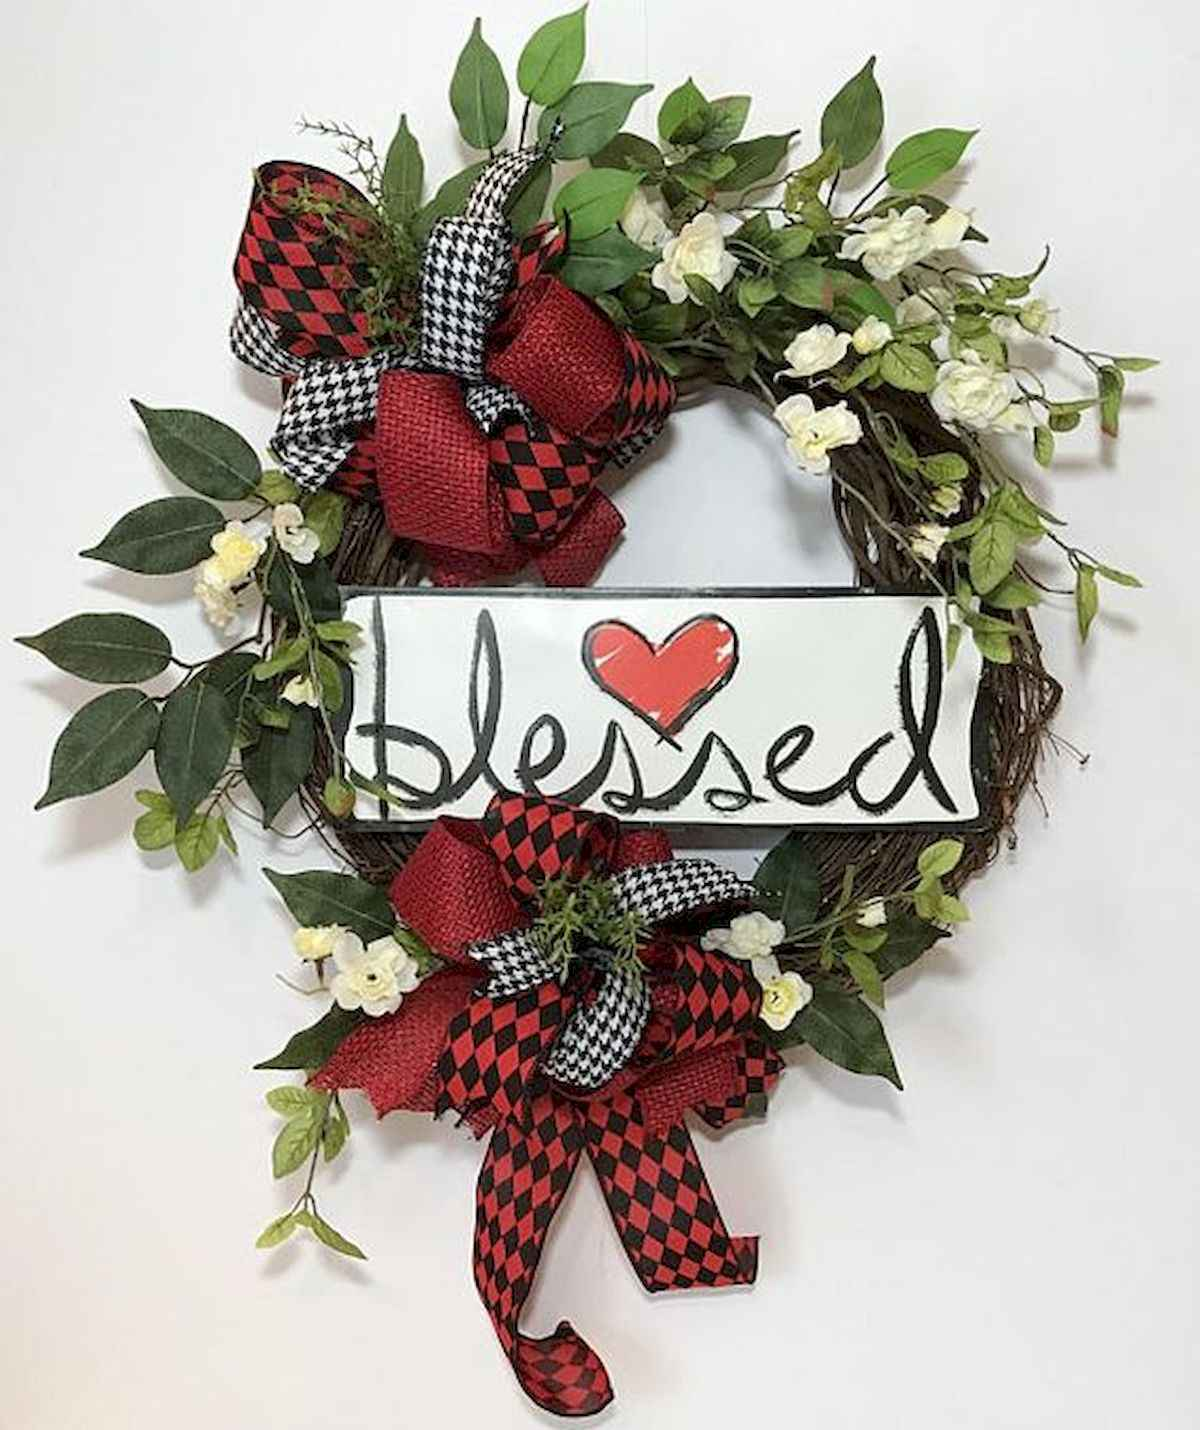 60 awesome wall art christmas ideas decorations (40)